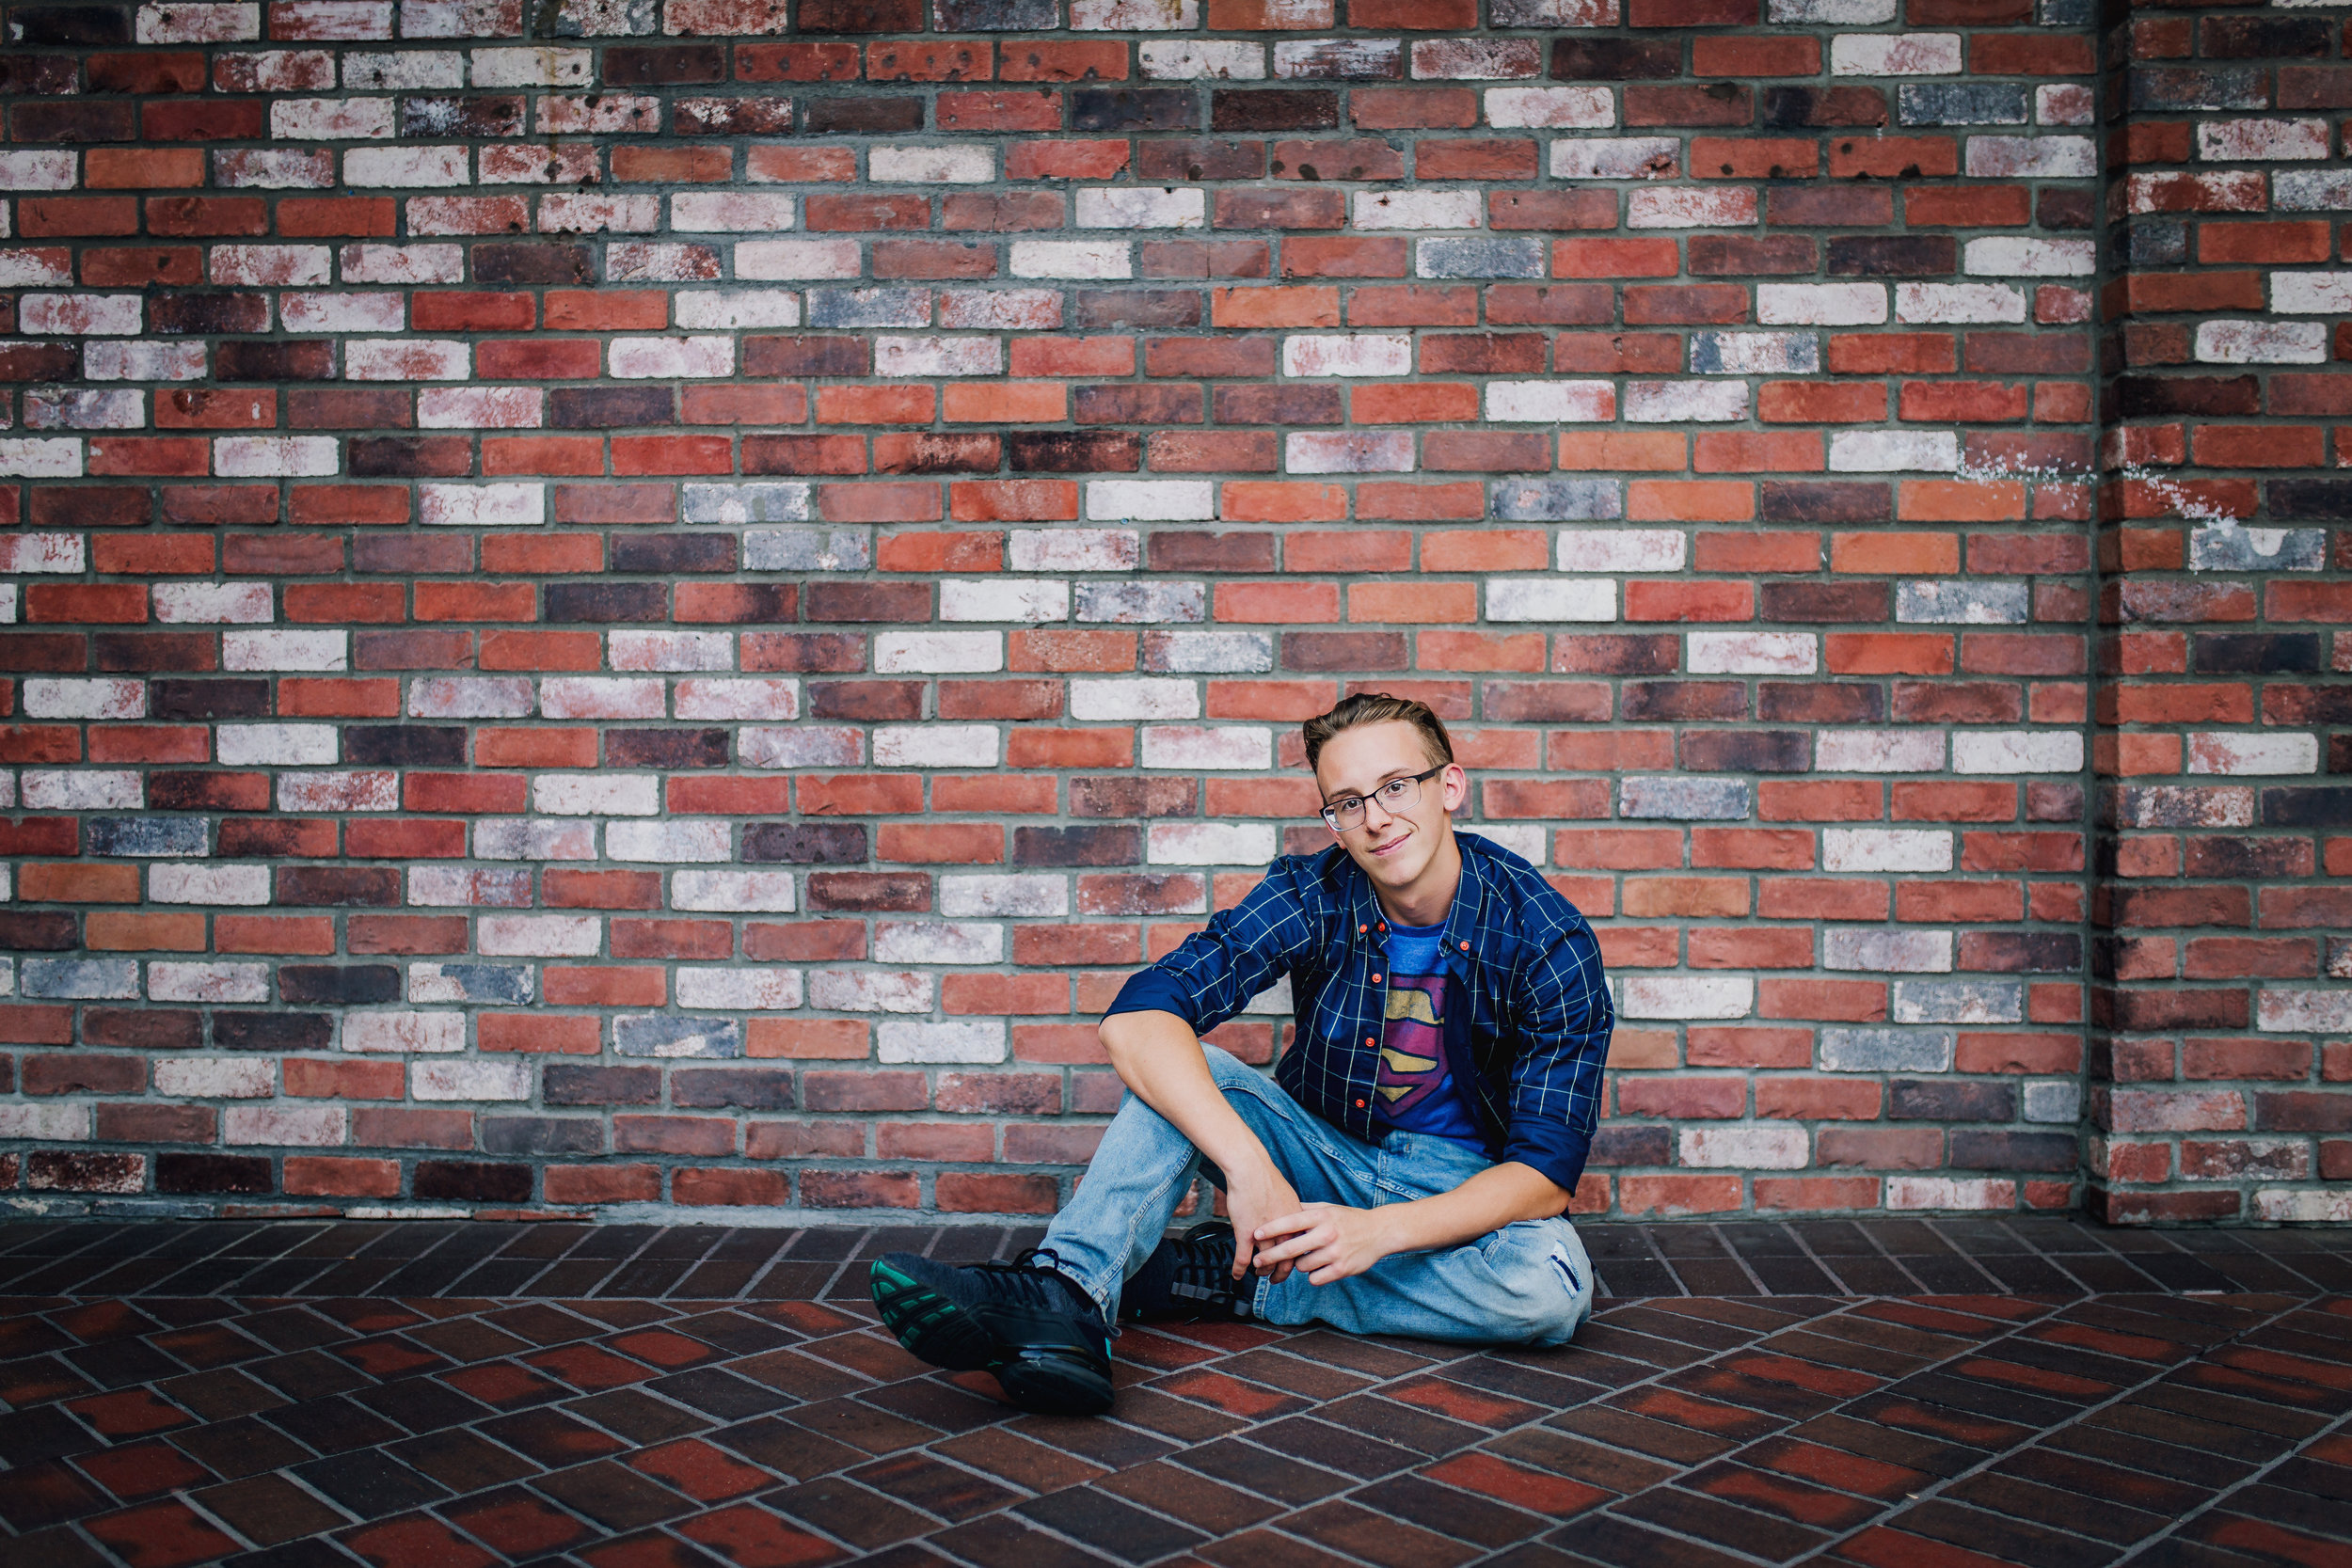 Young Gentleman Senior Portrait Photography session in Redlands by San Bernardino Based photographer, Nature's Reward Photography.